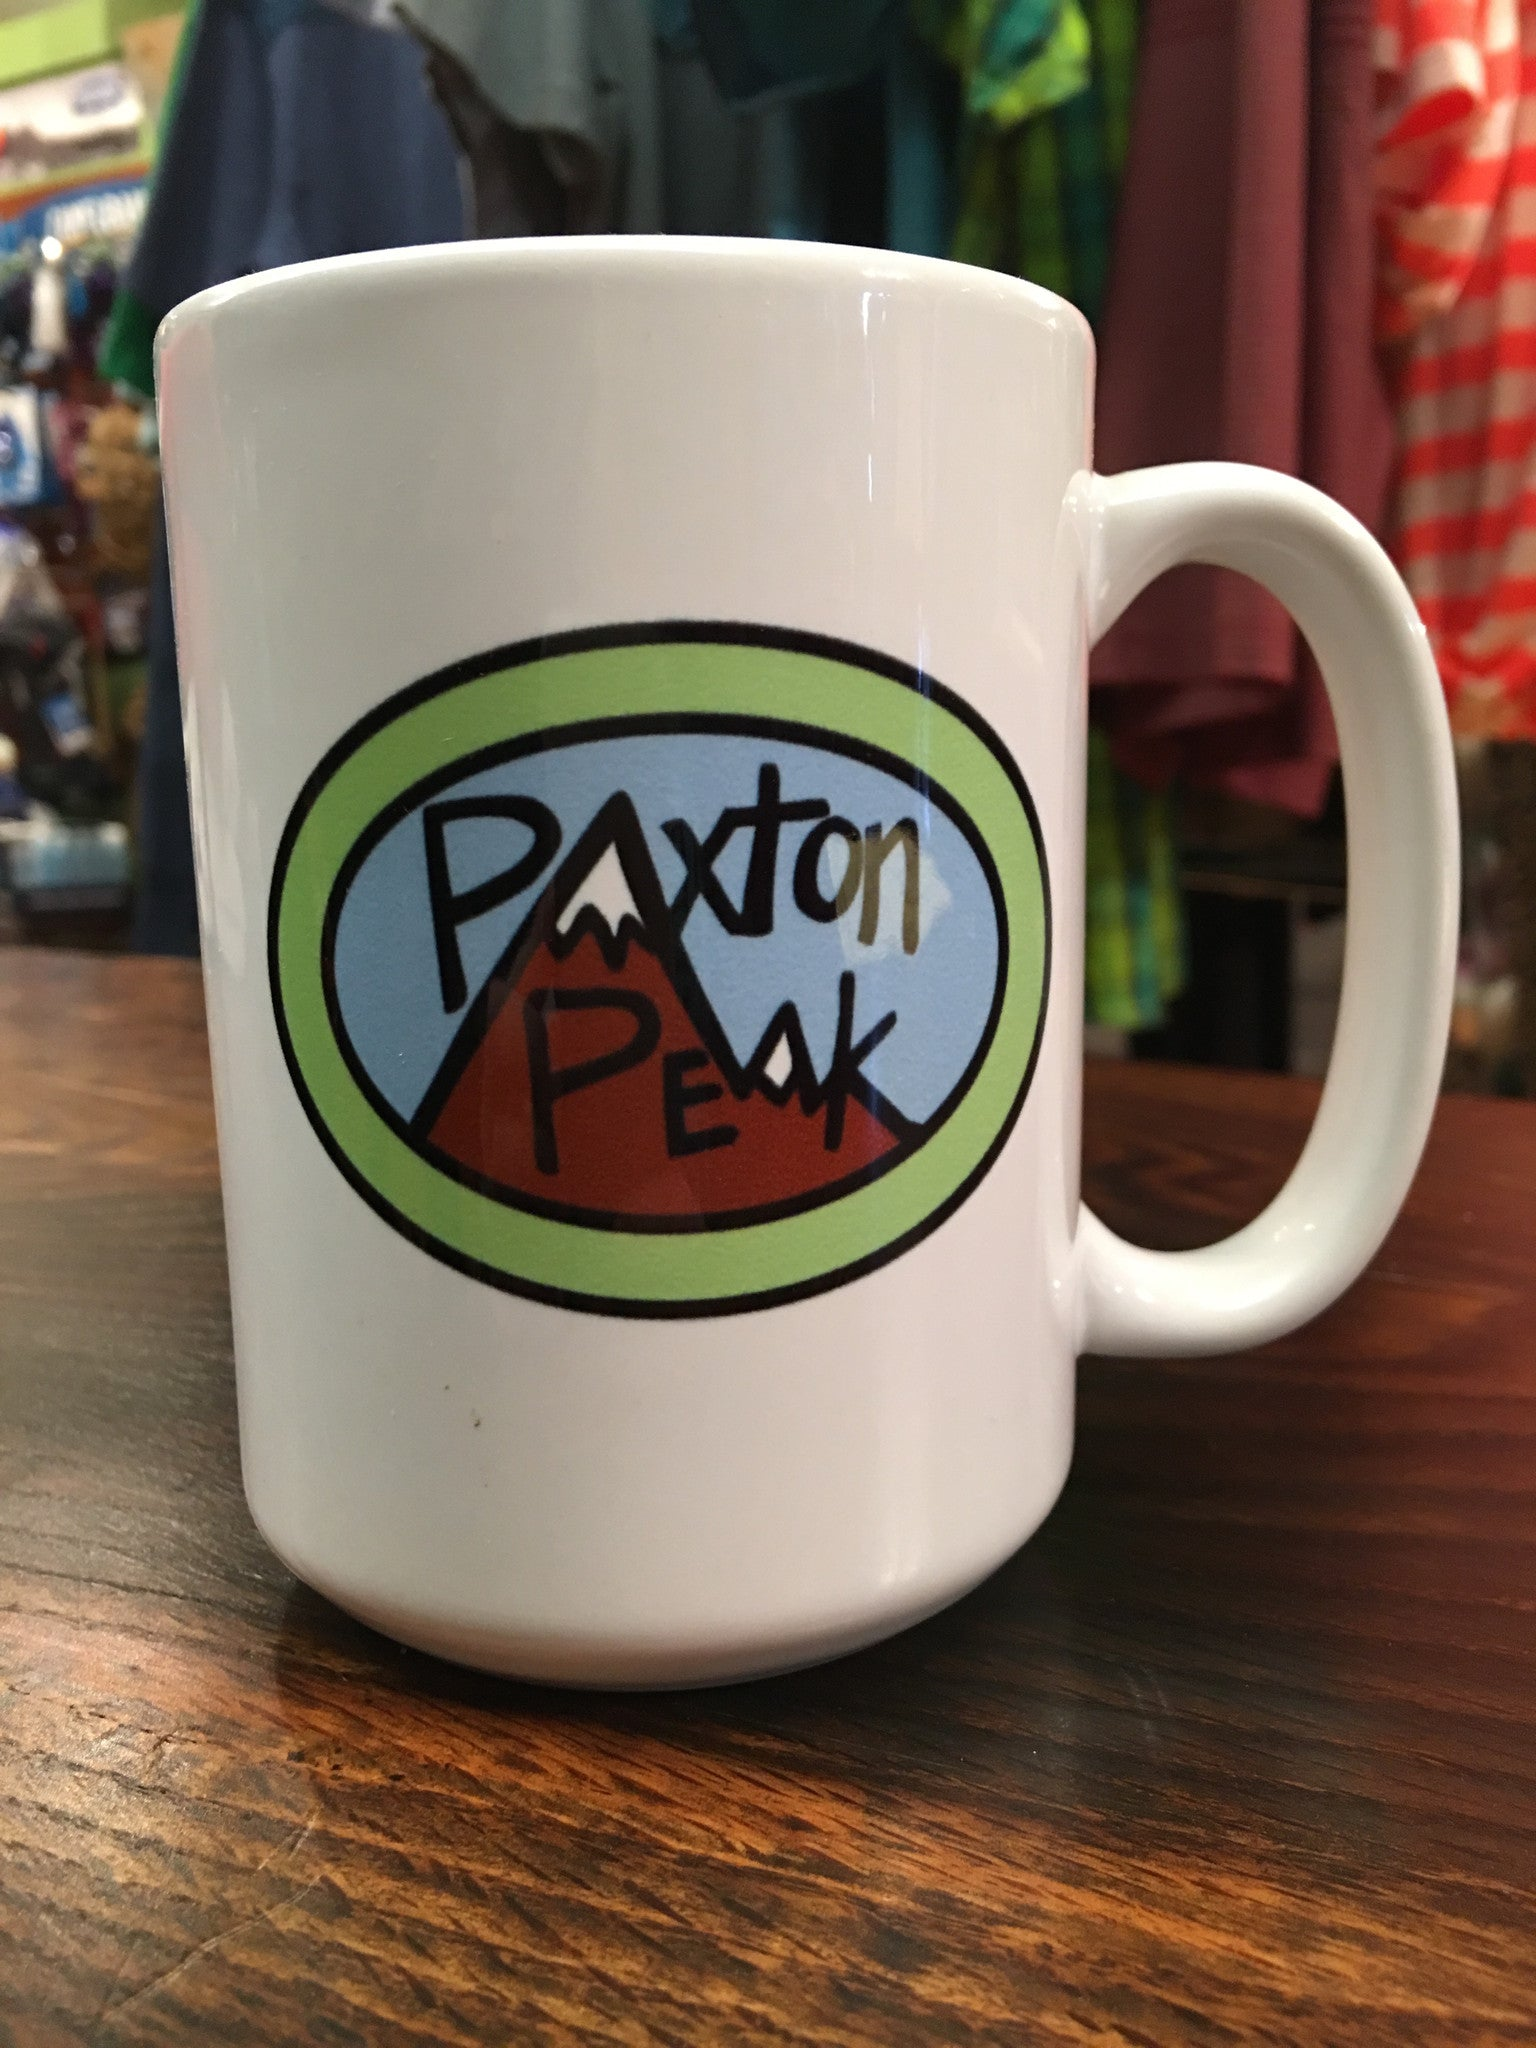 Paxton Peak Original Coffee Mug